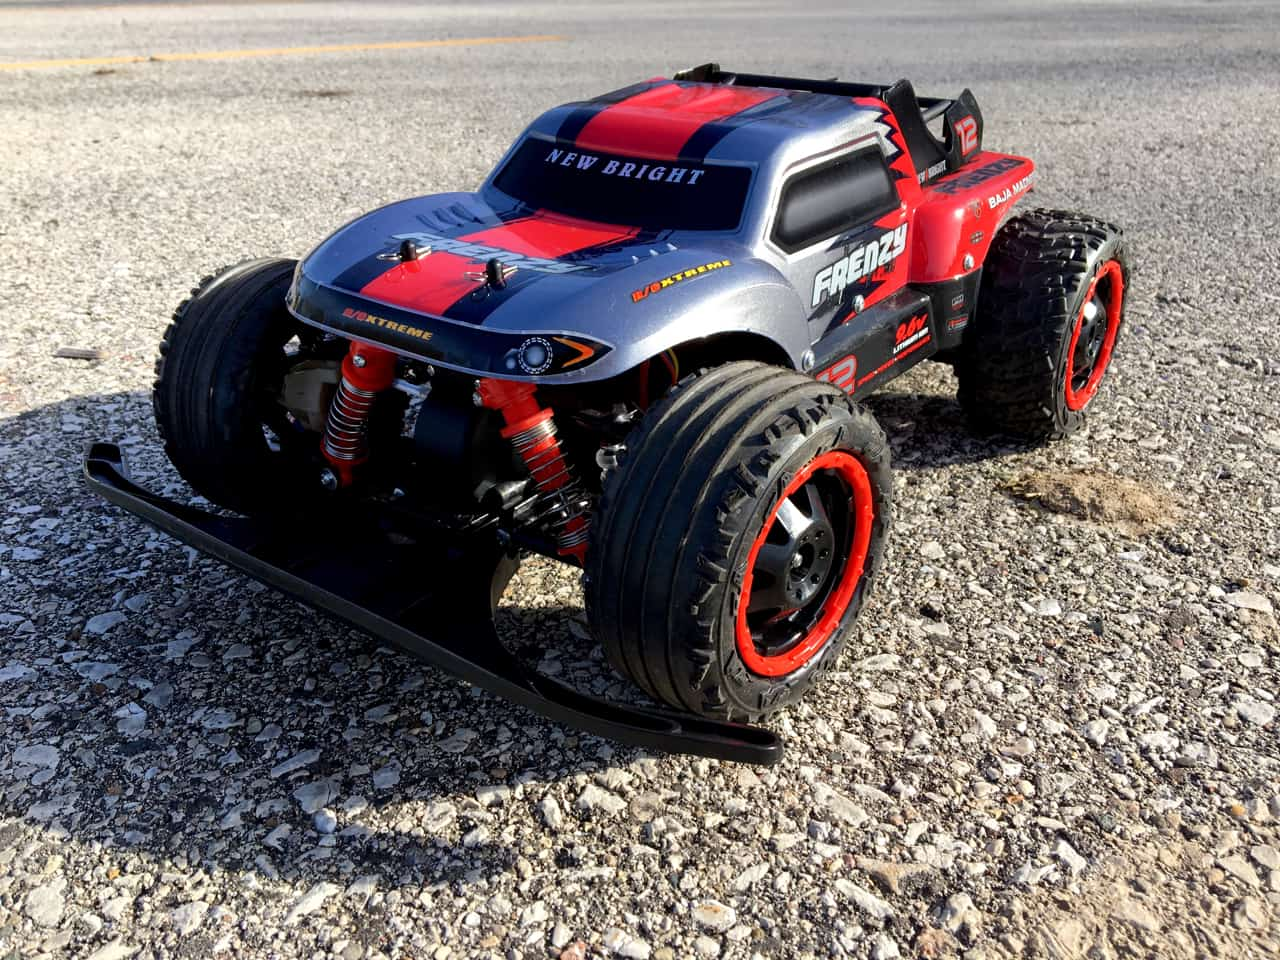 First Impressions: New Bright RC Frenzy 1/10 Brushless Stadium Truck